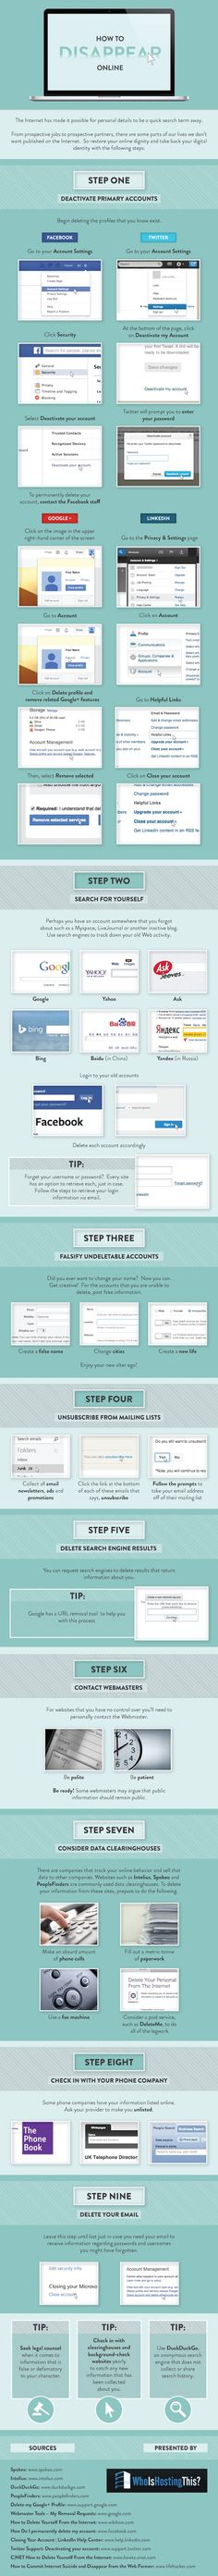 Infographic: How To Disappear Online. Put this in your Need To Know file. #infographics #howto #invisibleonline